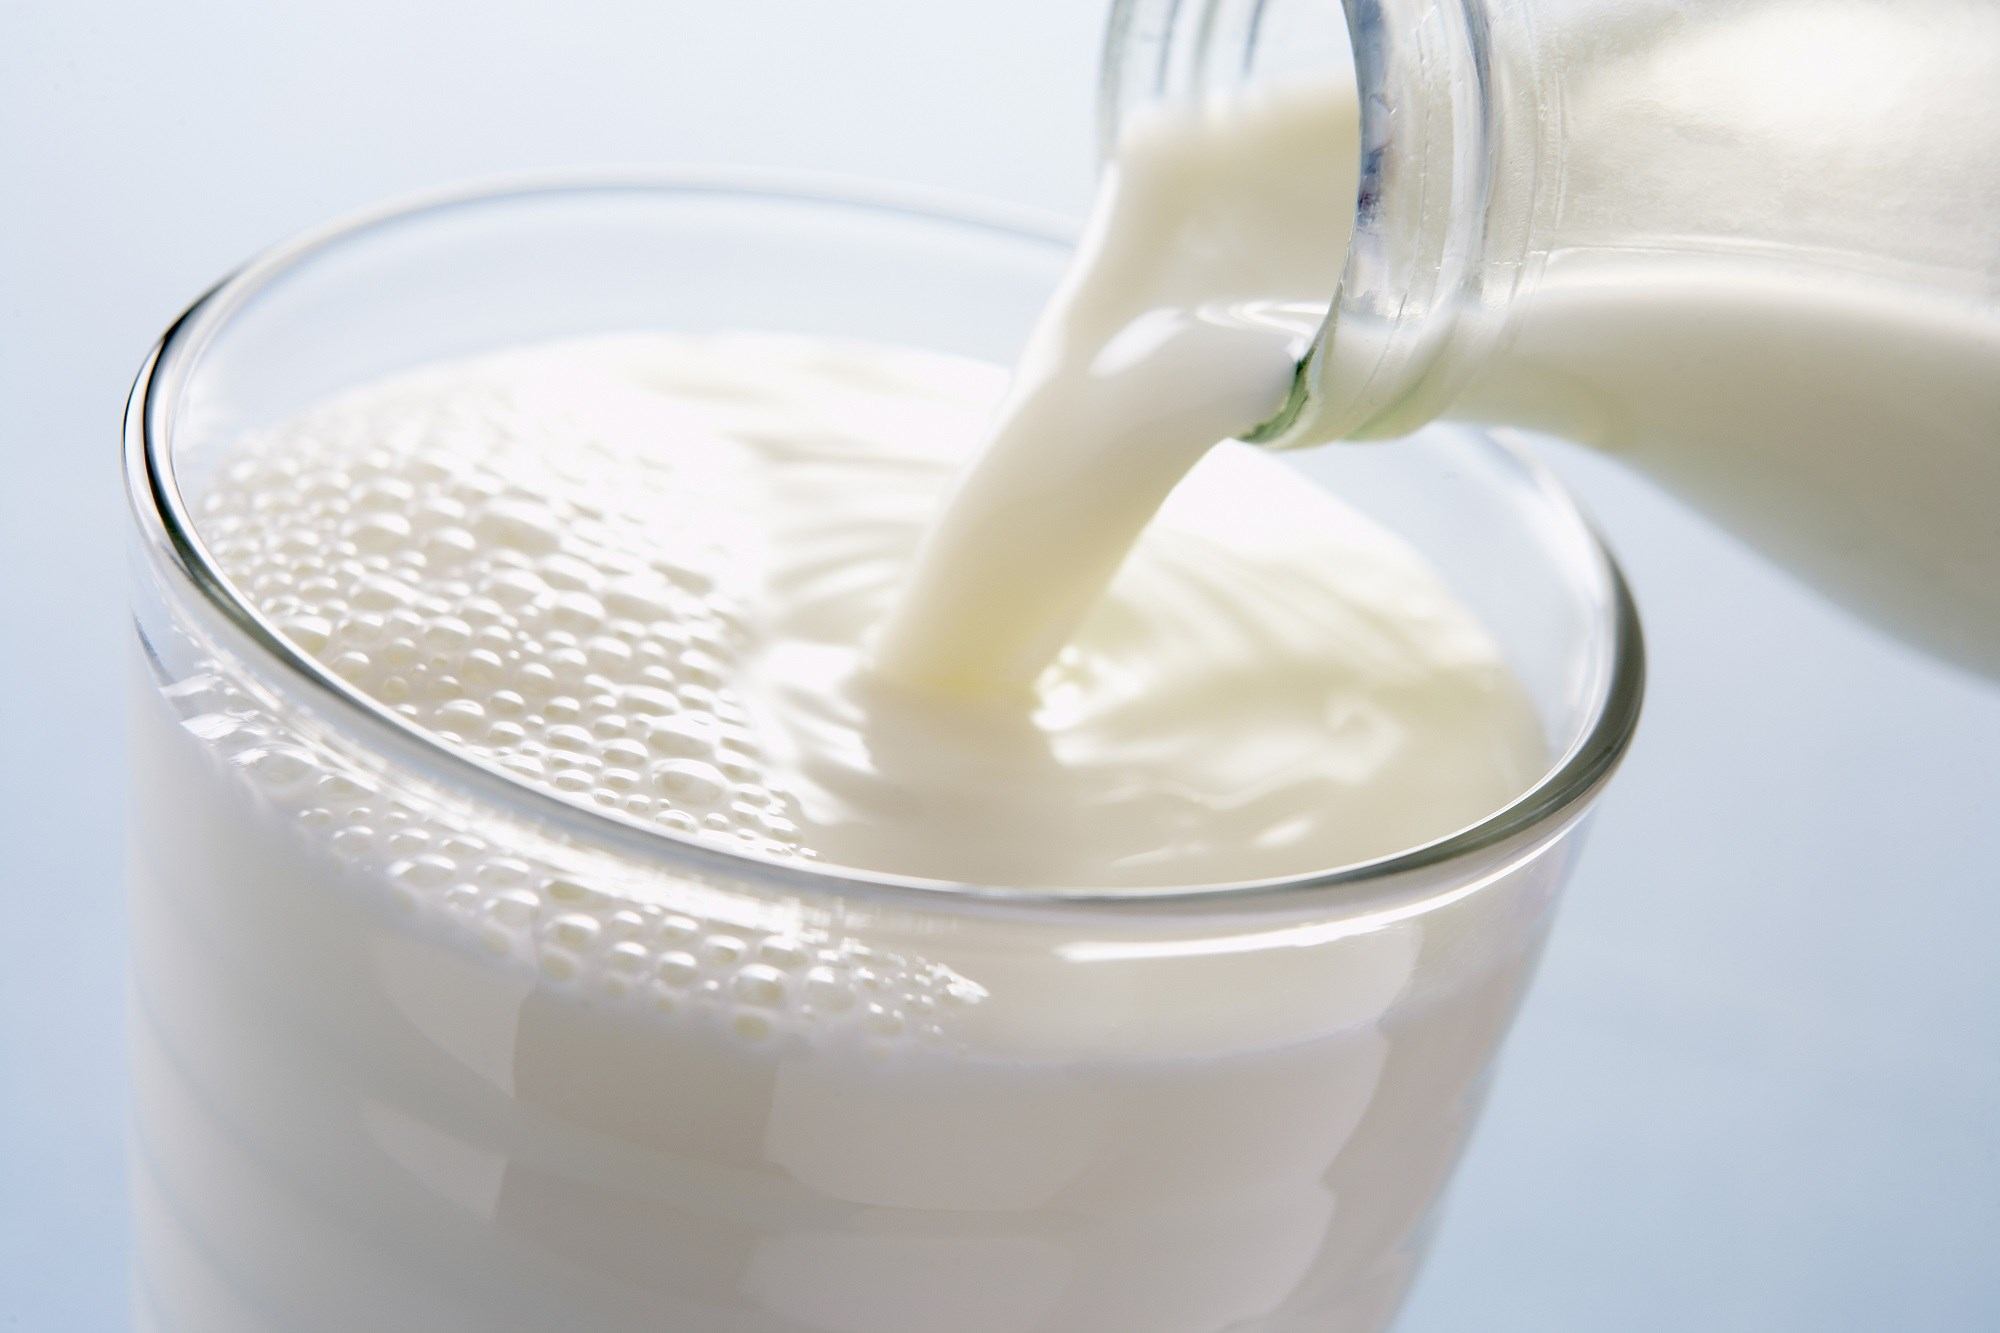 Biomarkers of Dairy Fat Consumption Inversely Associated With Type 2 Diabetes Risk